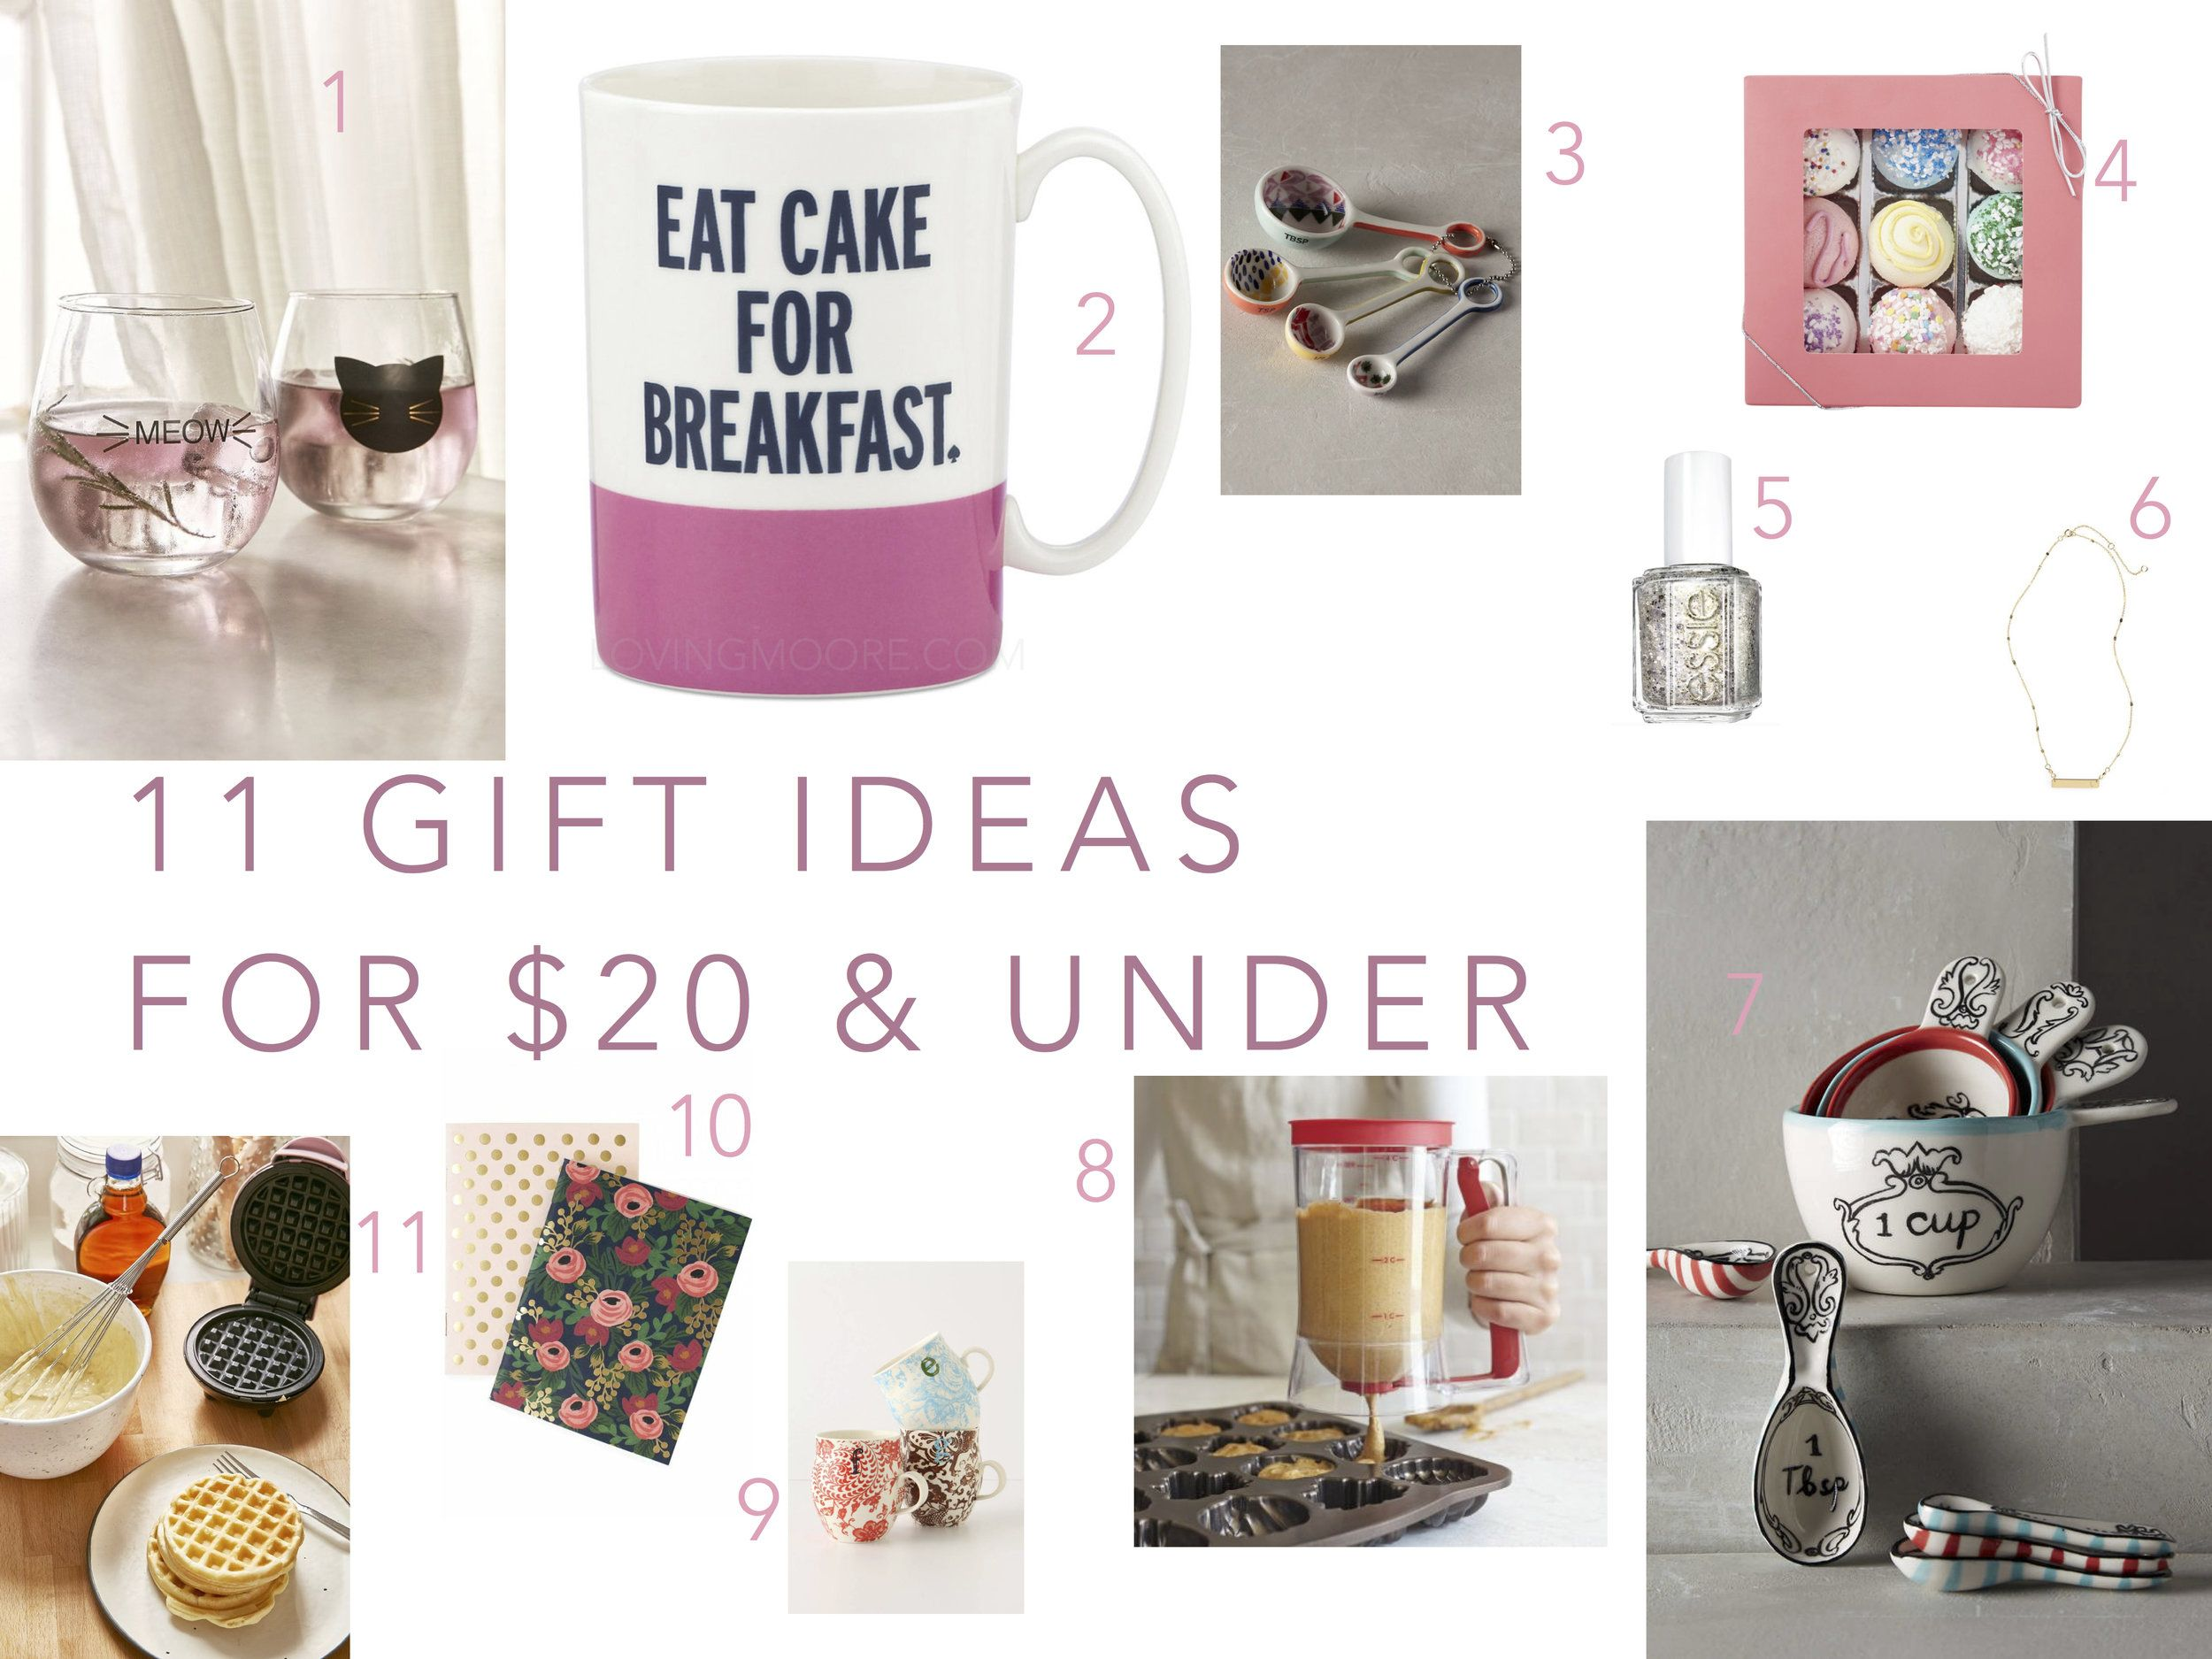 11 gift ideas for 20 under gift exchanges white